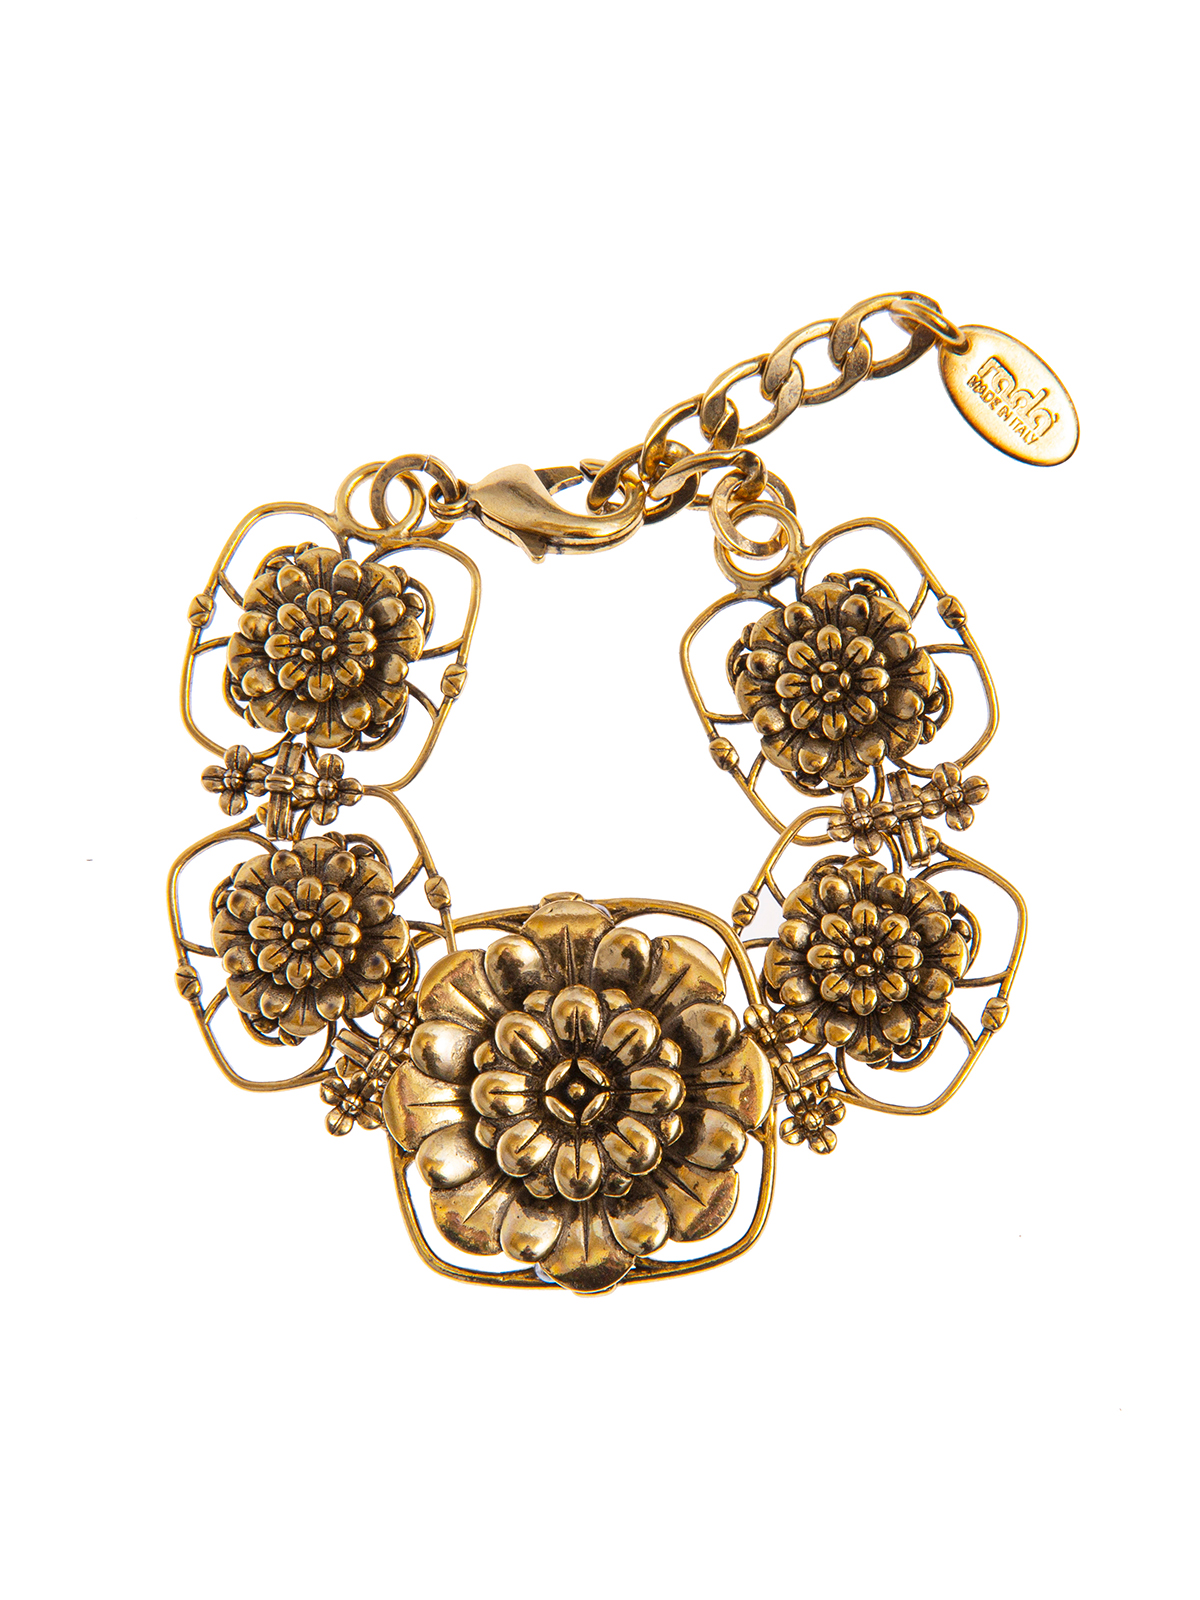 Chain bracelet with metal flowers